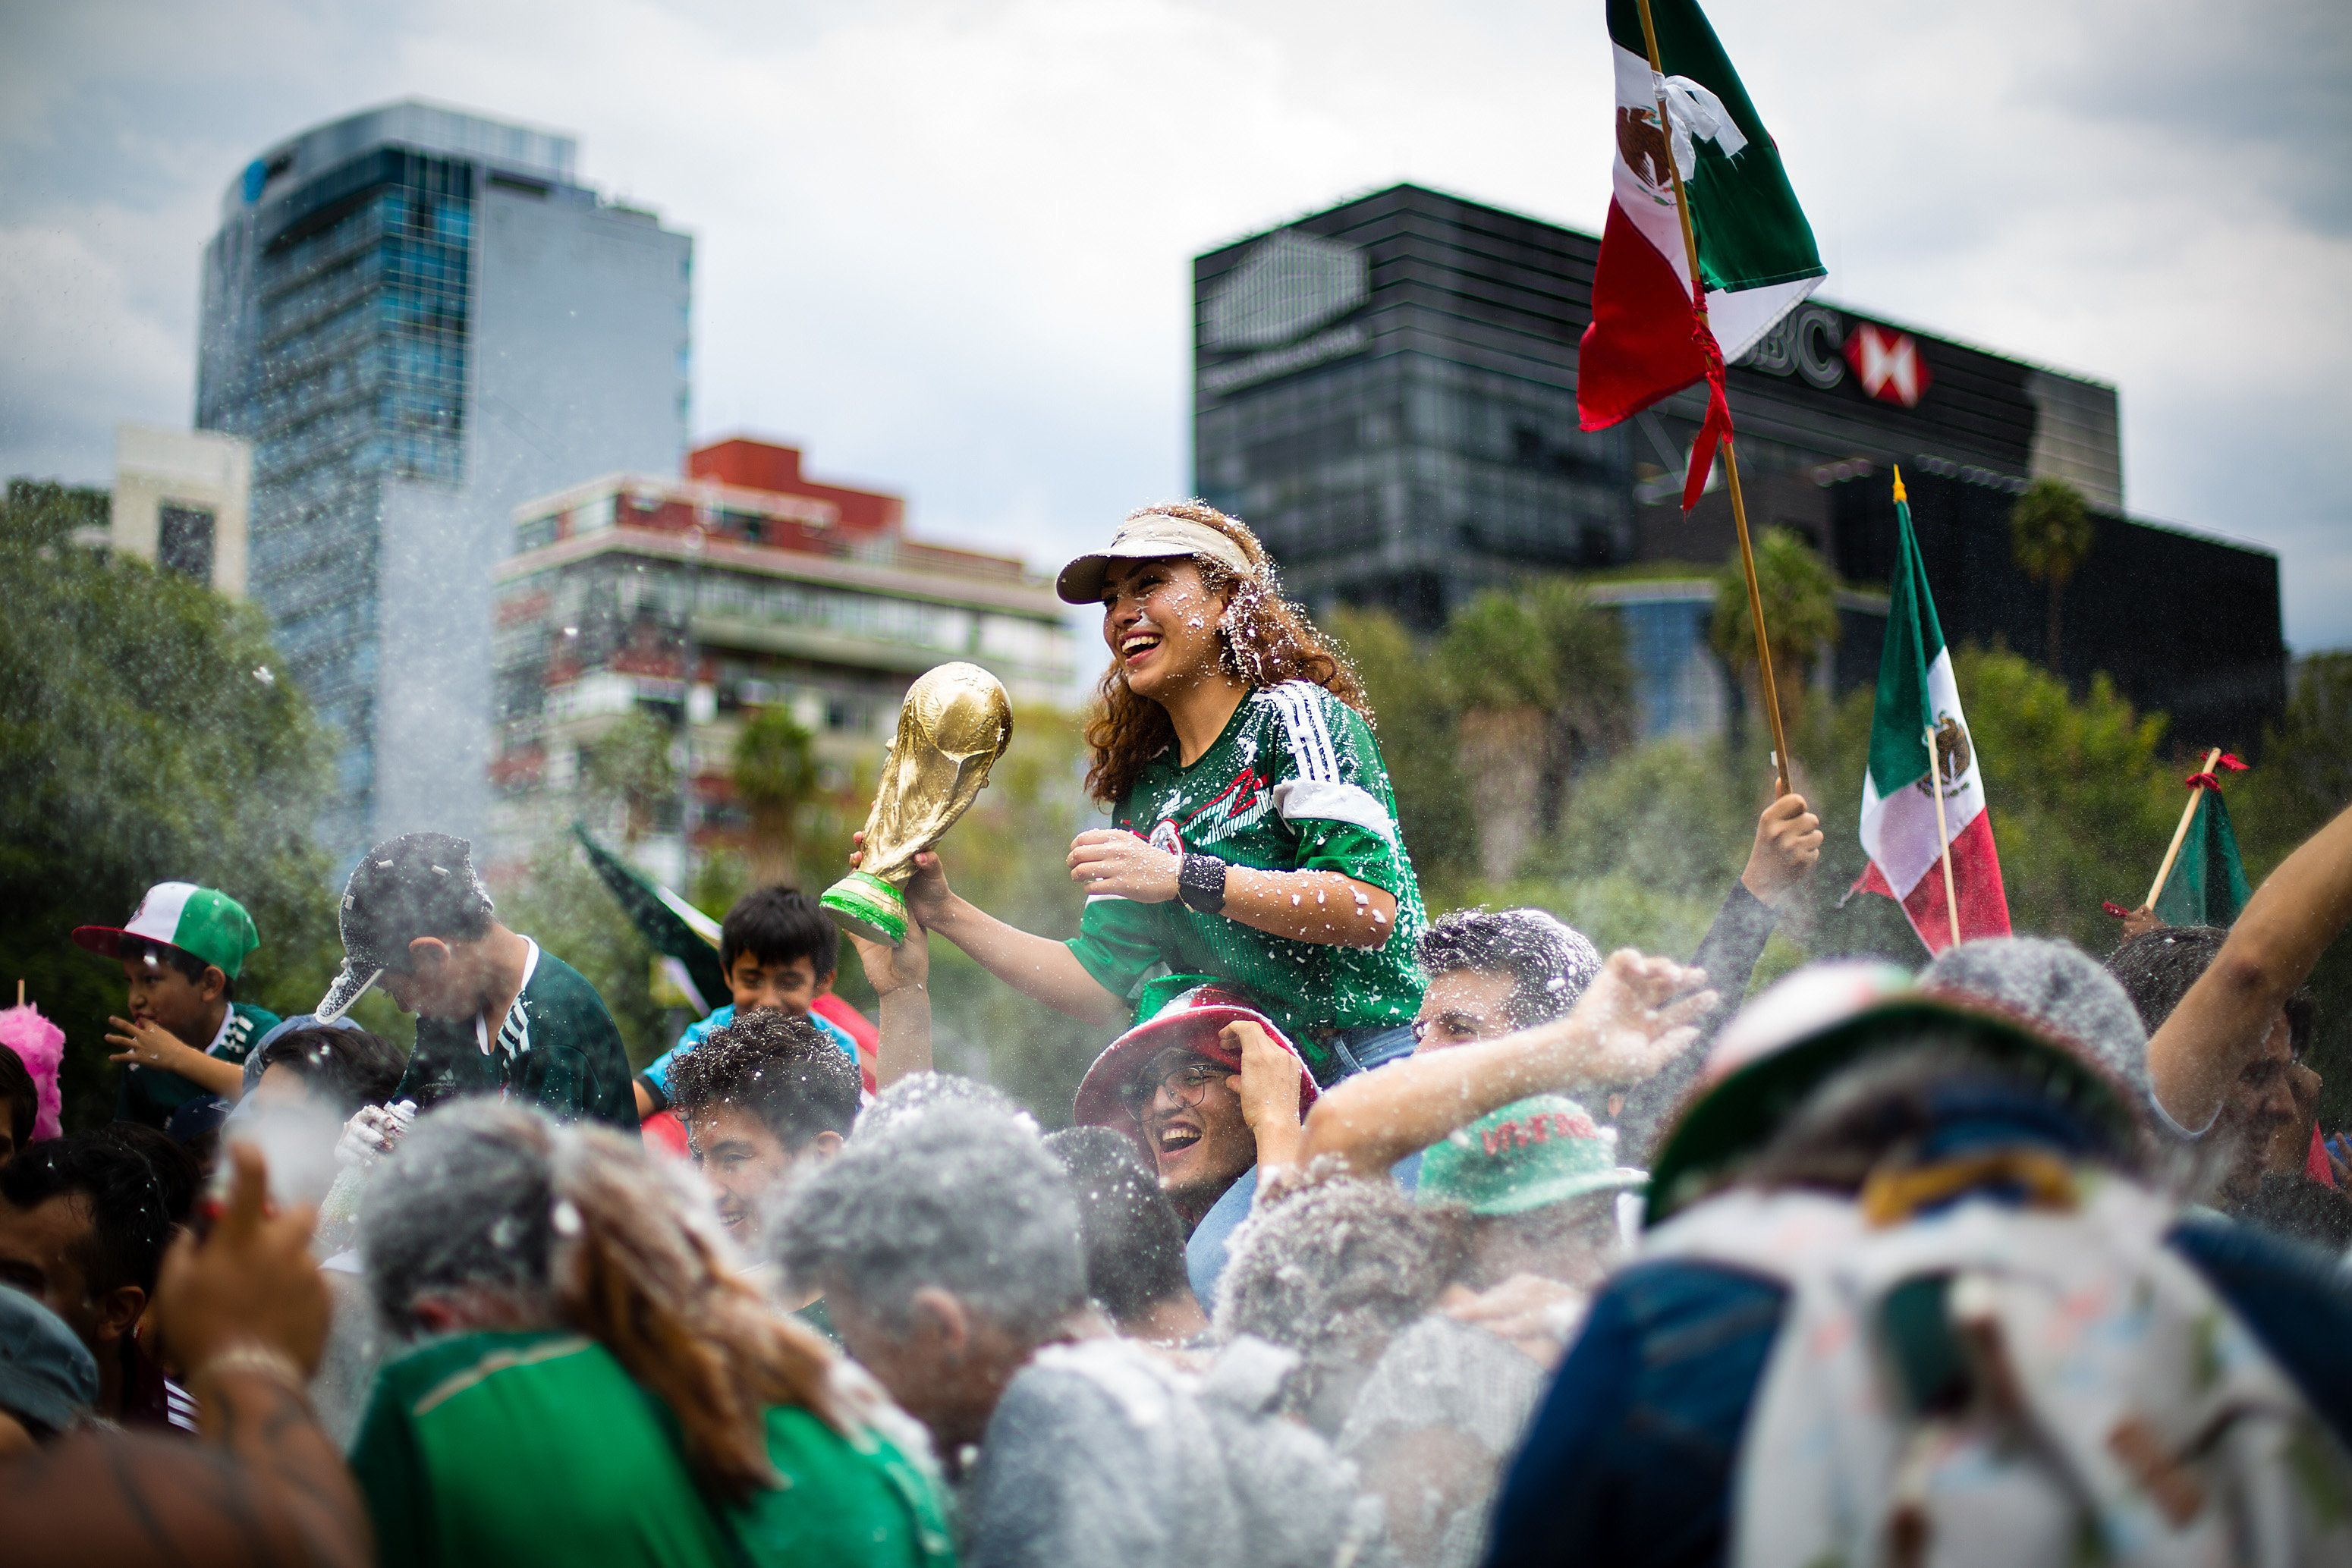 Fans Cheering World Cup Goal May Have Caused 'Artificial Earthquake' In Mexico